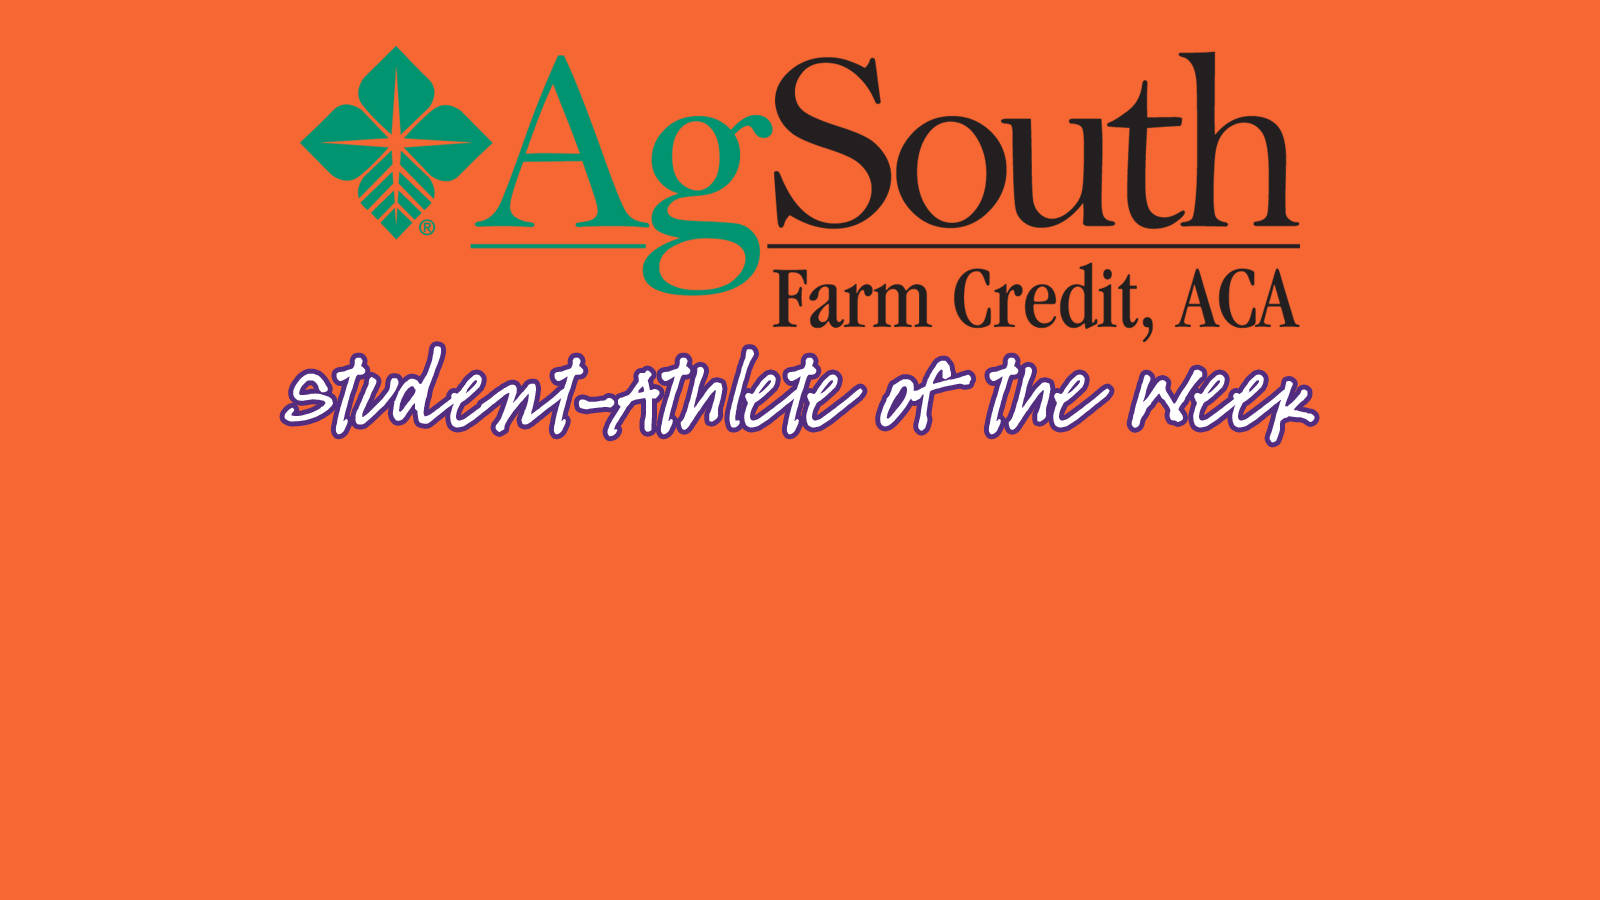 AgSouth Homegrown Athlete of the Week – Austin Savage